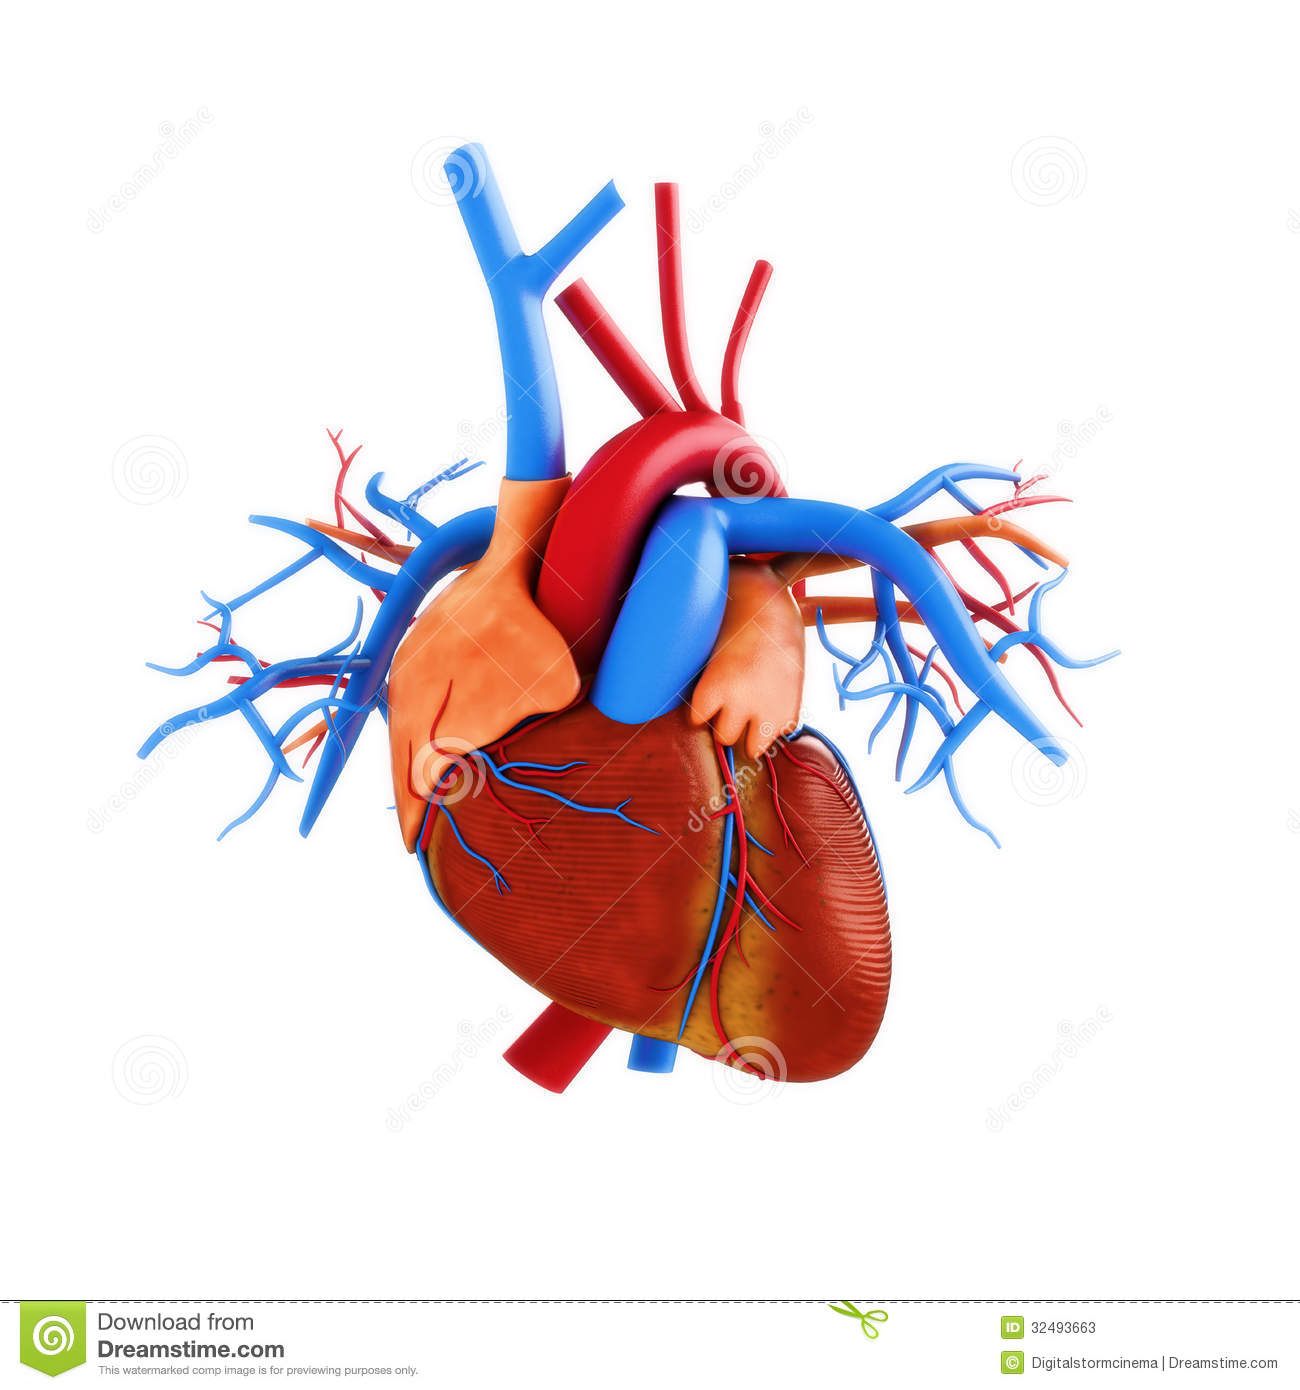 Human Heart Anatomy Illustration Stock Illustration - Illustration ...